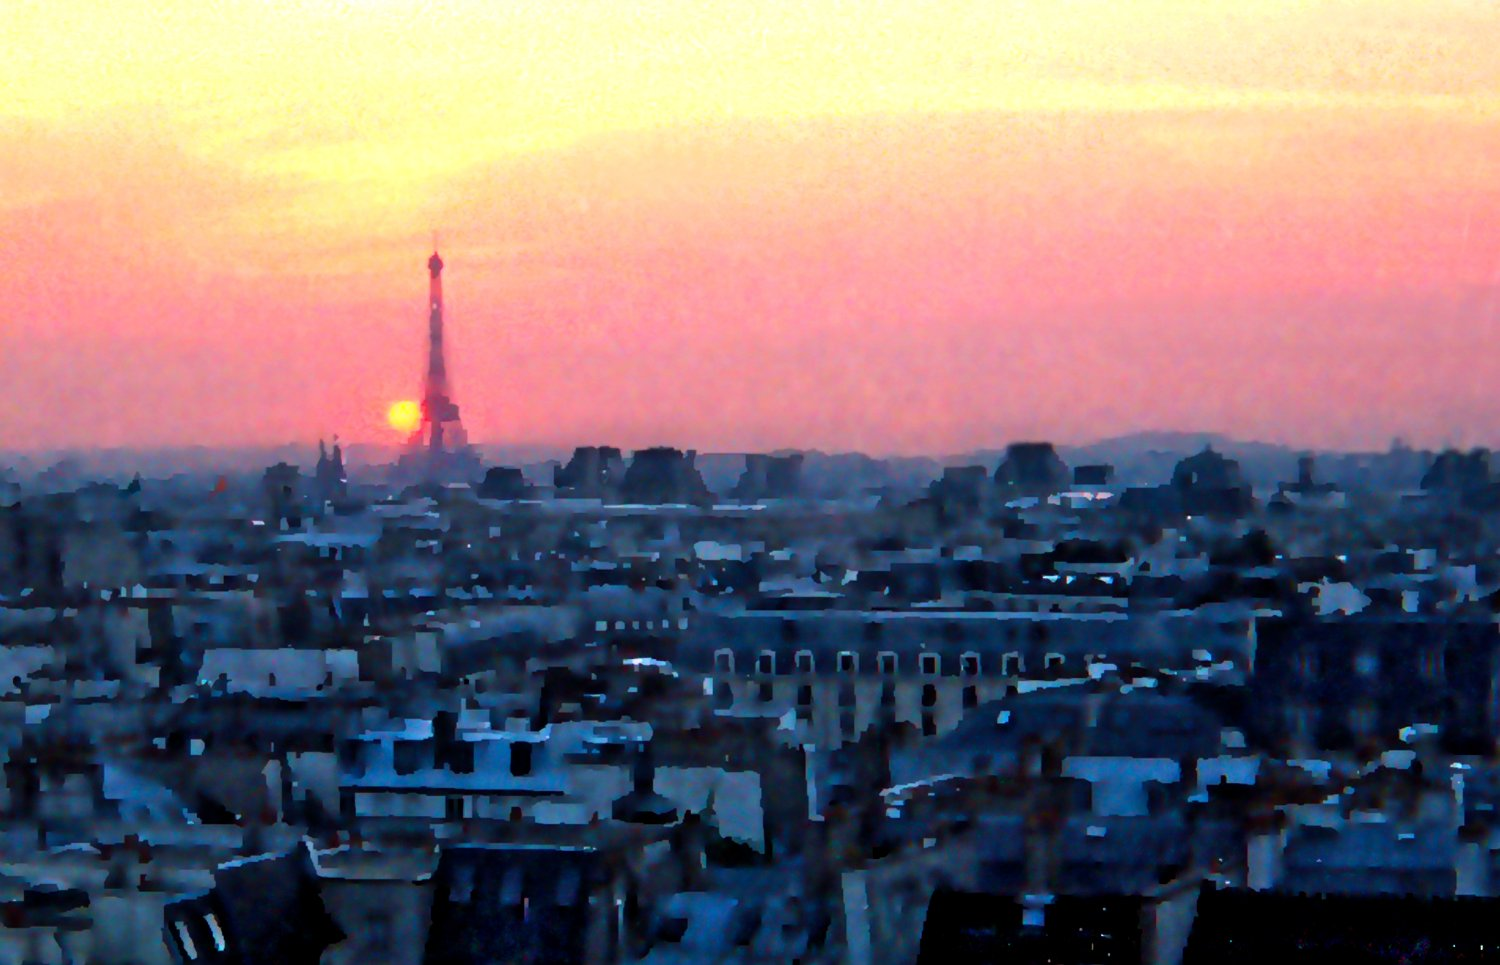 - Goodnight, Paris. A view across the city as the sun sets. - Paris, eiffel tower - - art  - photography - by Tony Karp